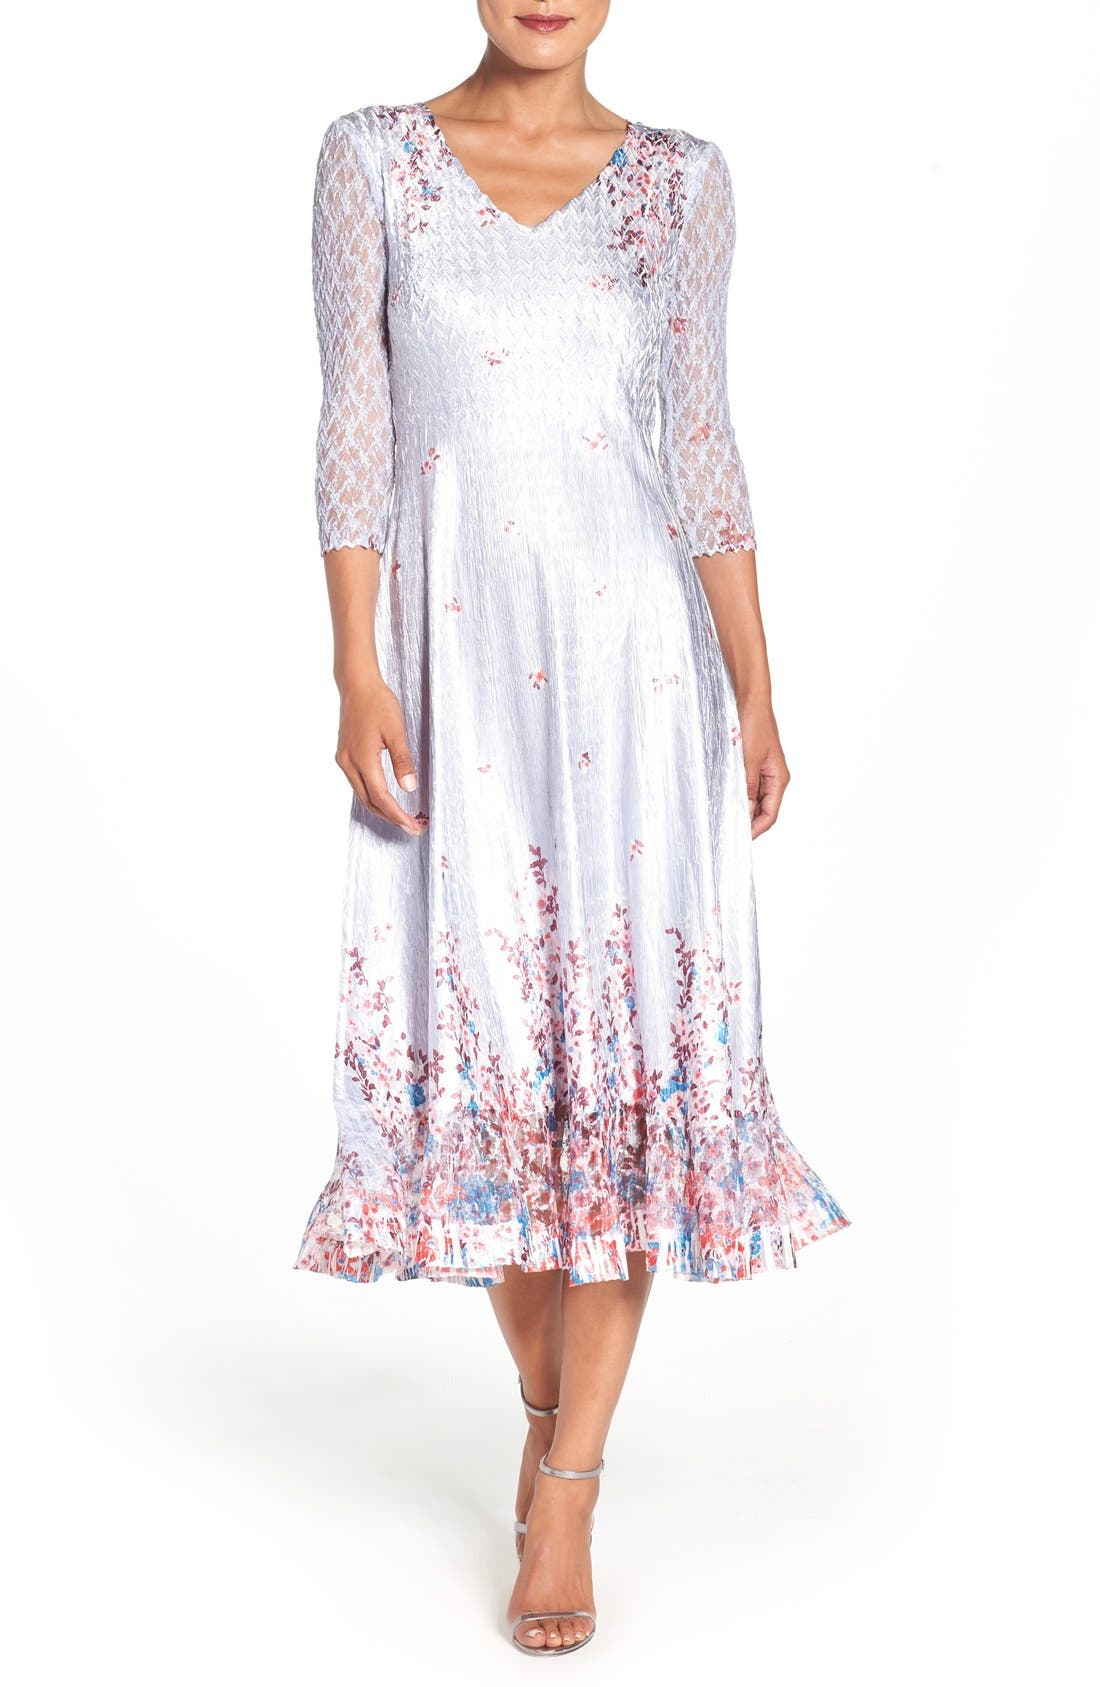 Alternate Image 1 Selected - Komarov Floral Charmeuse & Lace A-Line Dress (Regular & Petite)